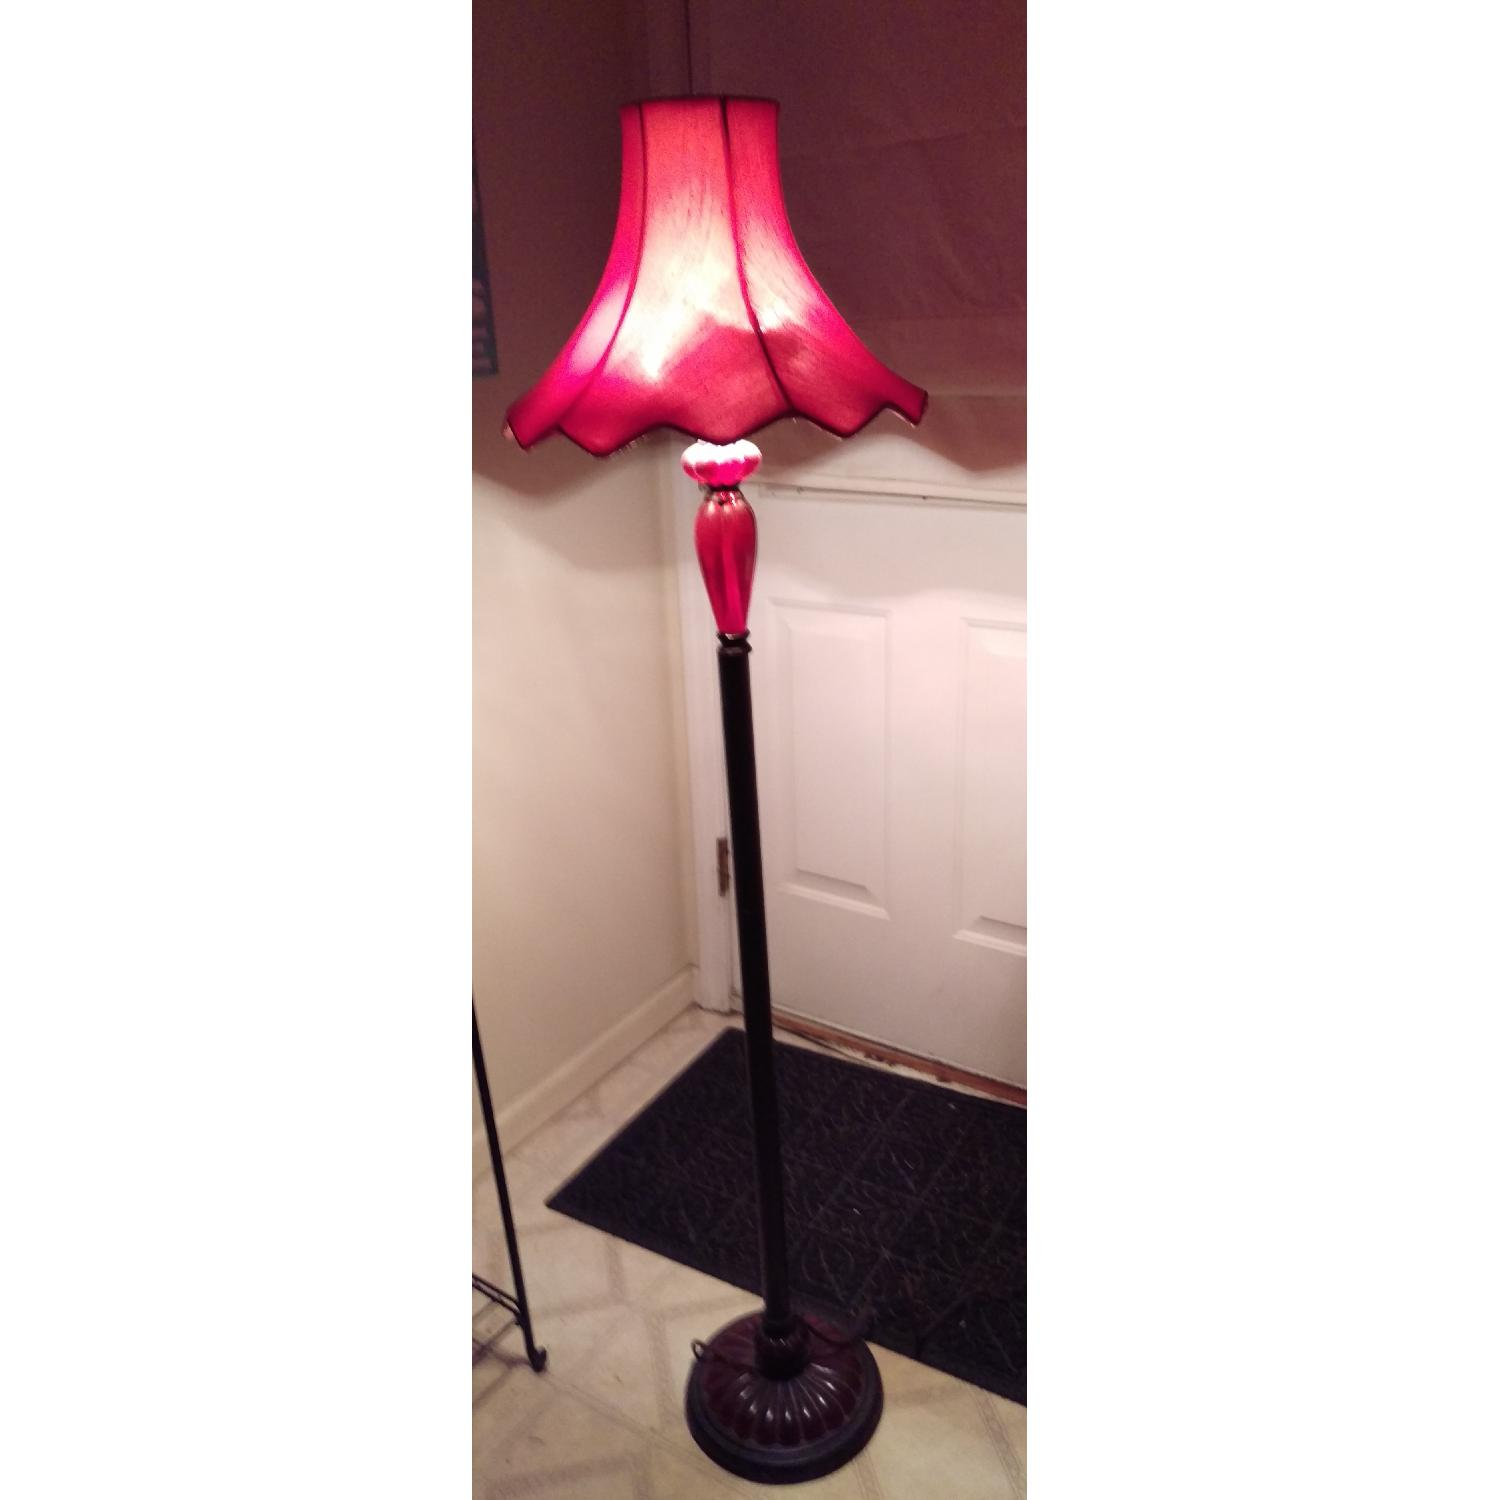 Torchiere Floor Lamp w/ Red Shade-13